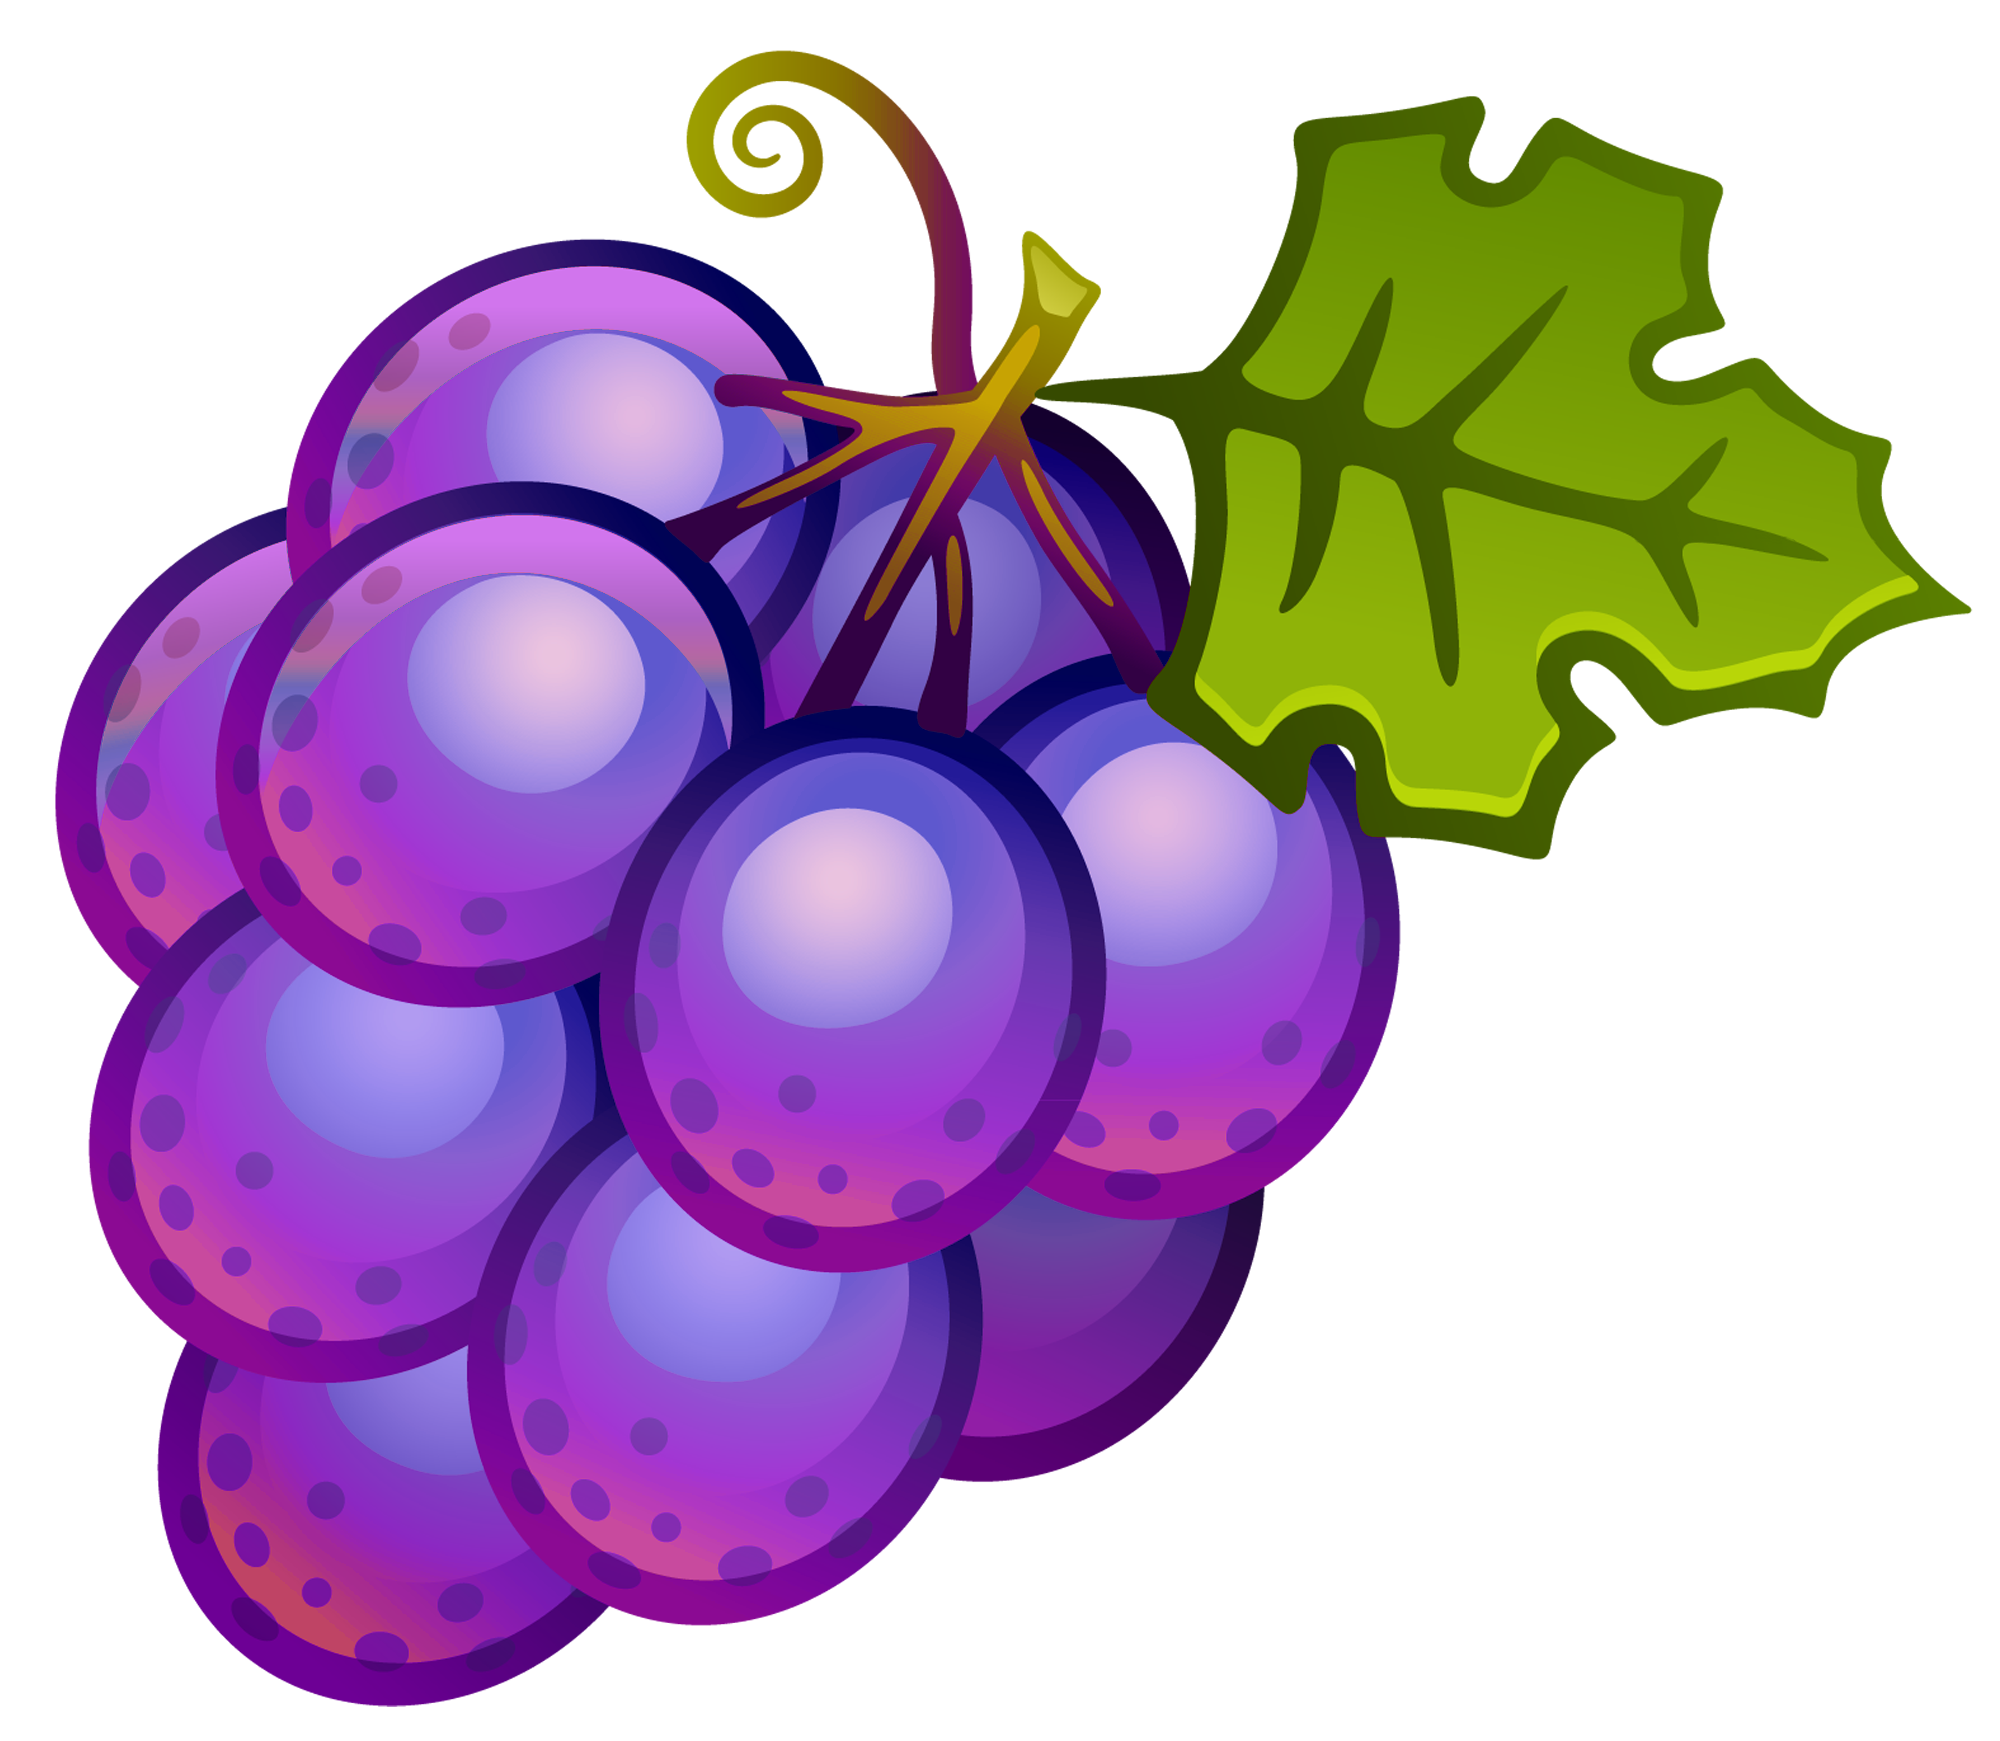 grapes clipart at getdrawings com free for personal use grapes rh getdrawings com clipart grapes and vines clip art grapefruit drawings free